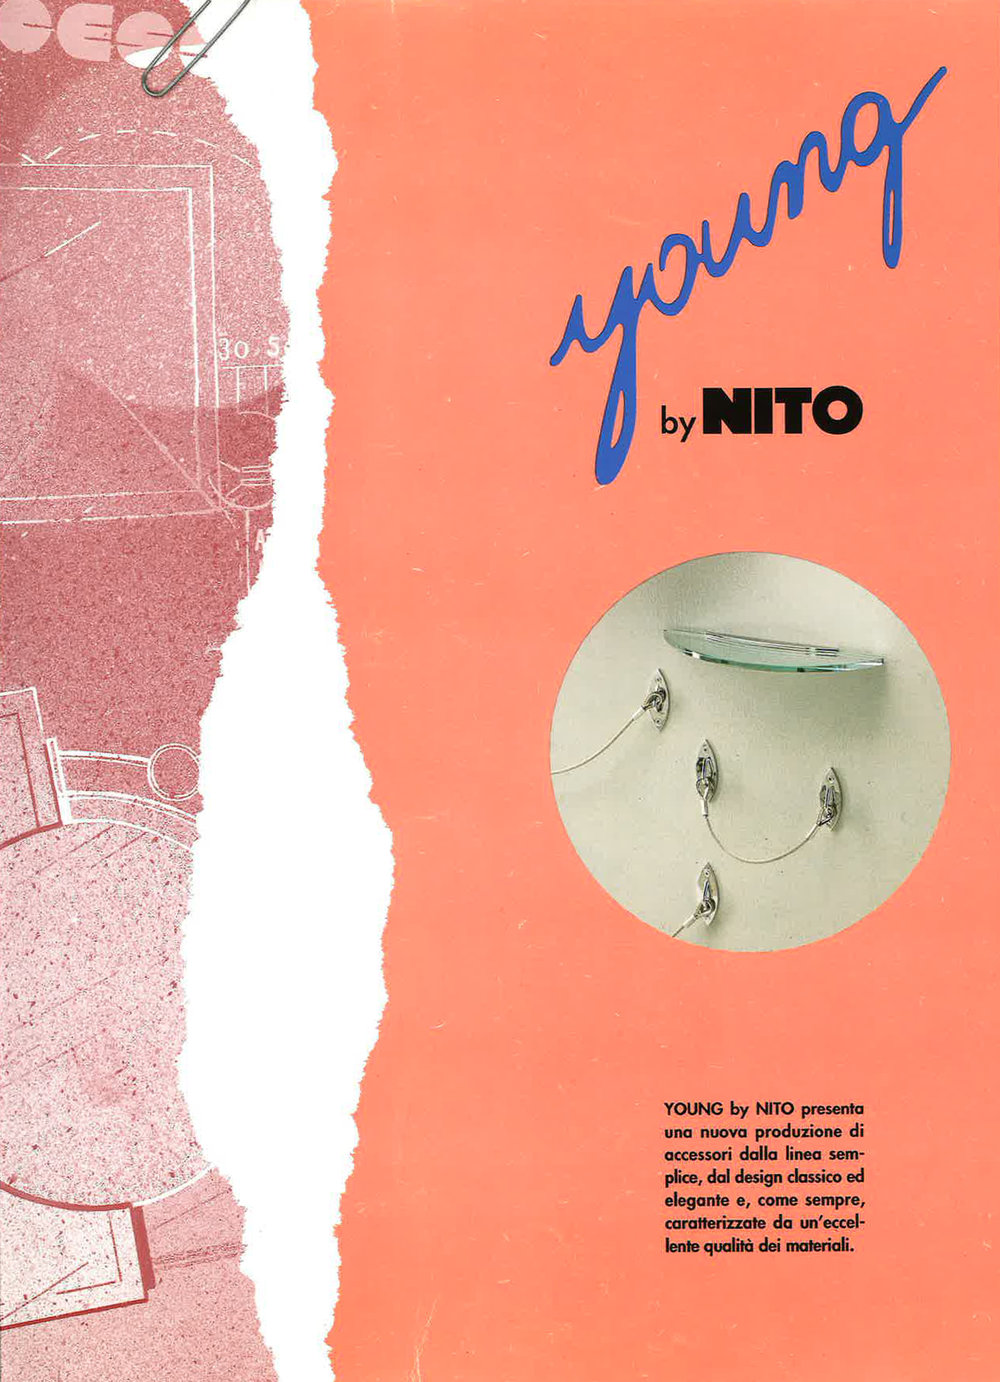 NITO catalog image of Venezia bath accessories range